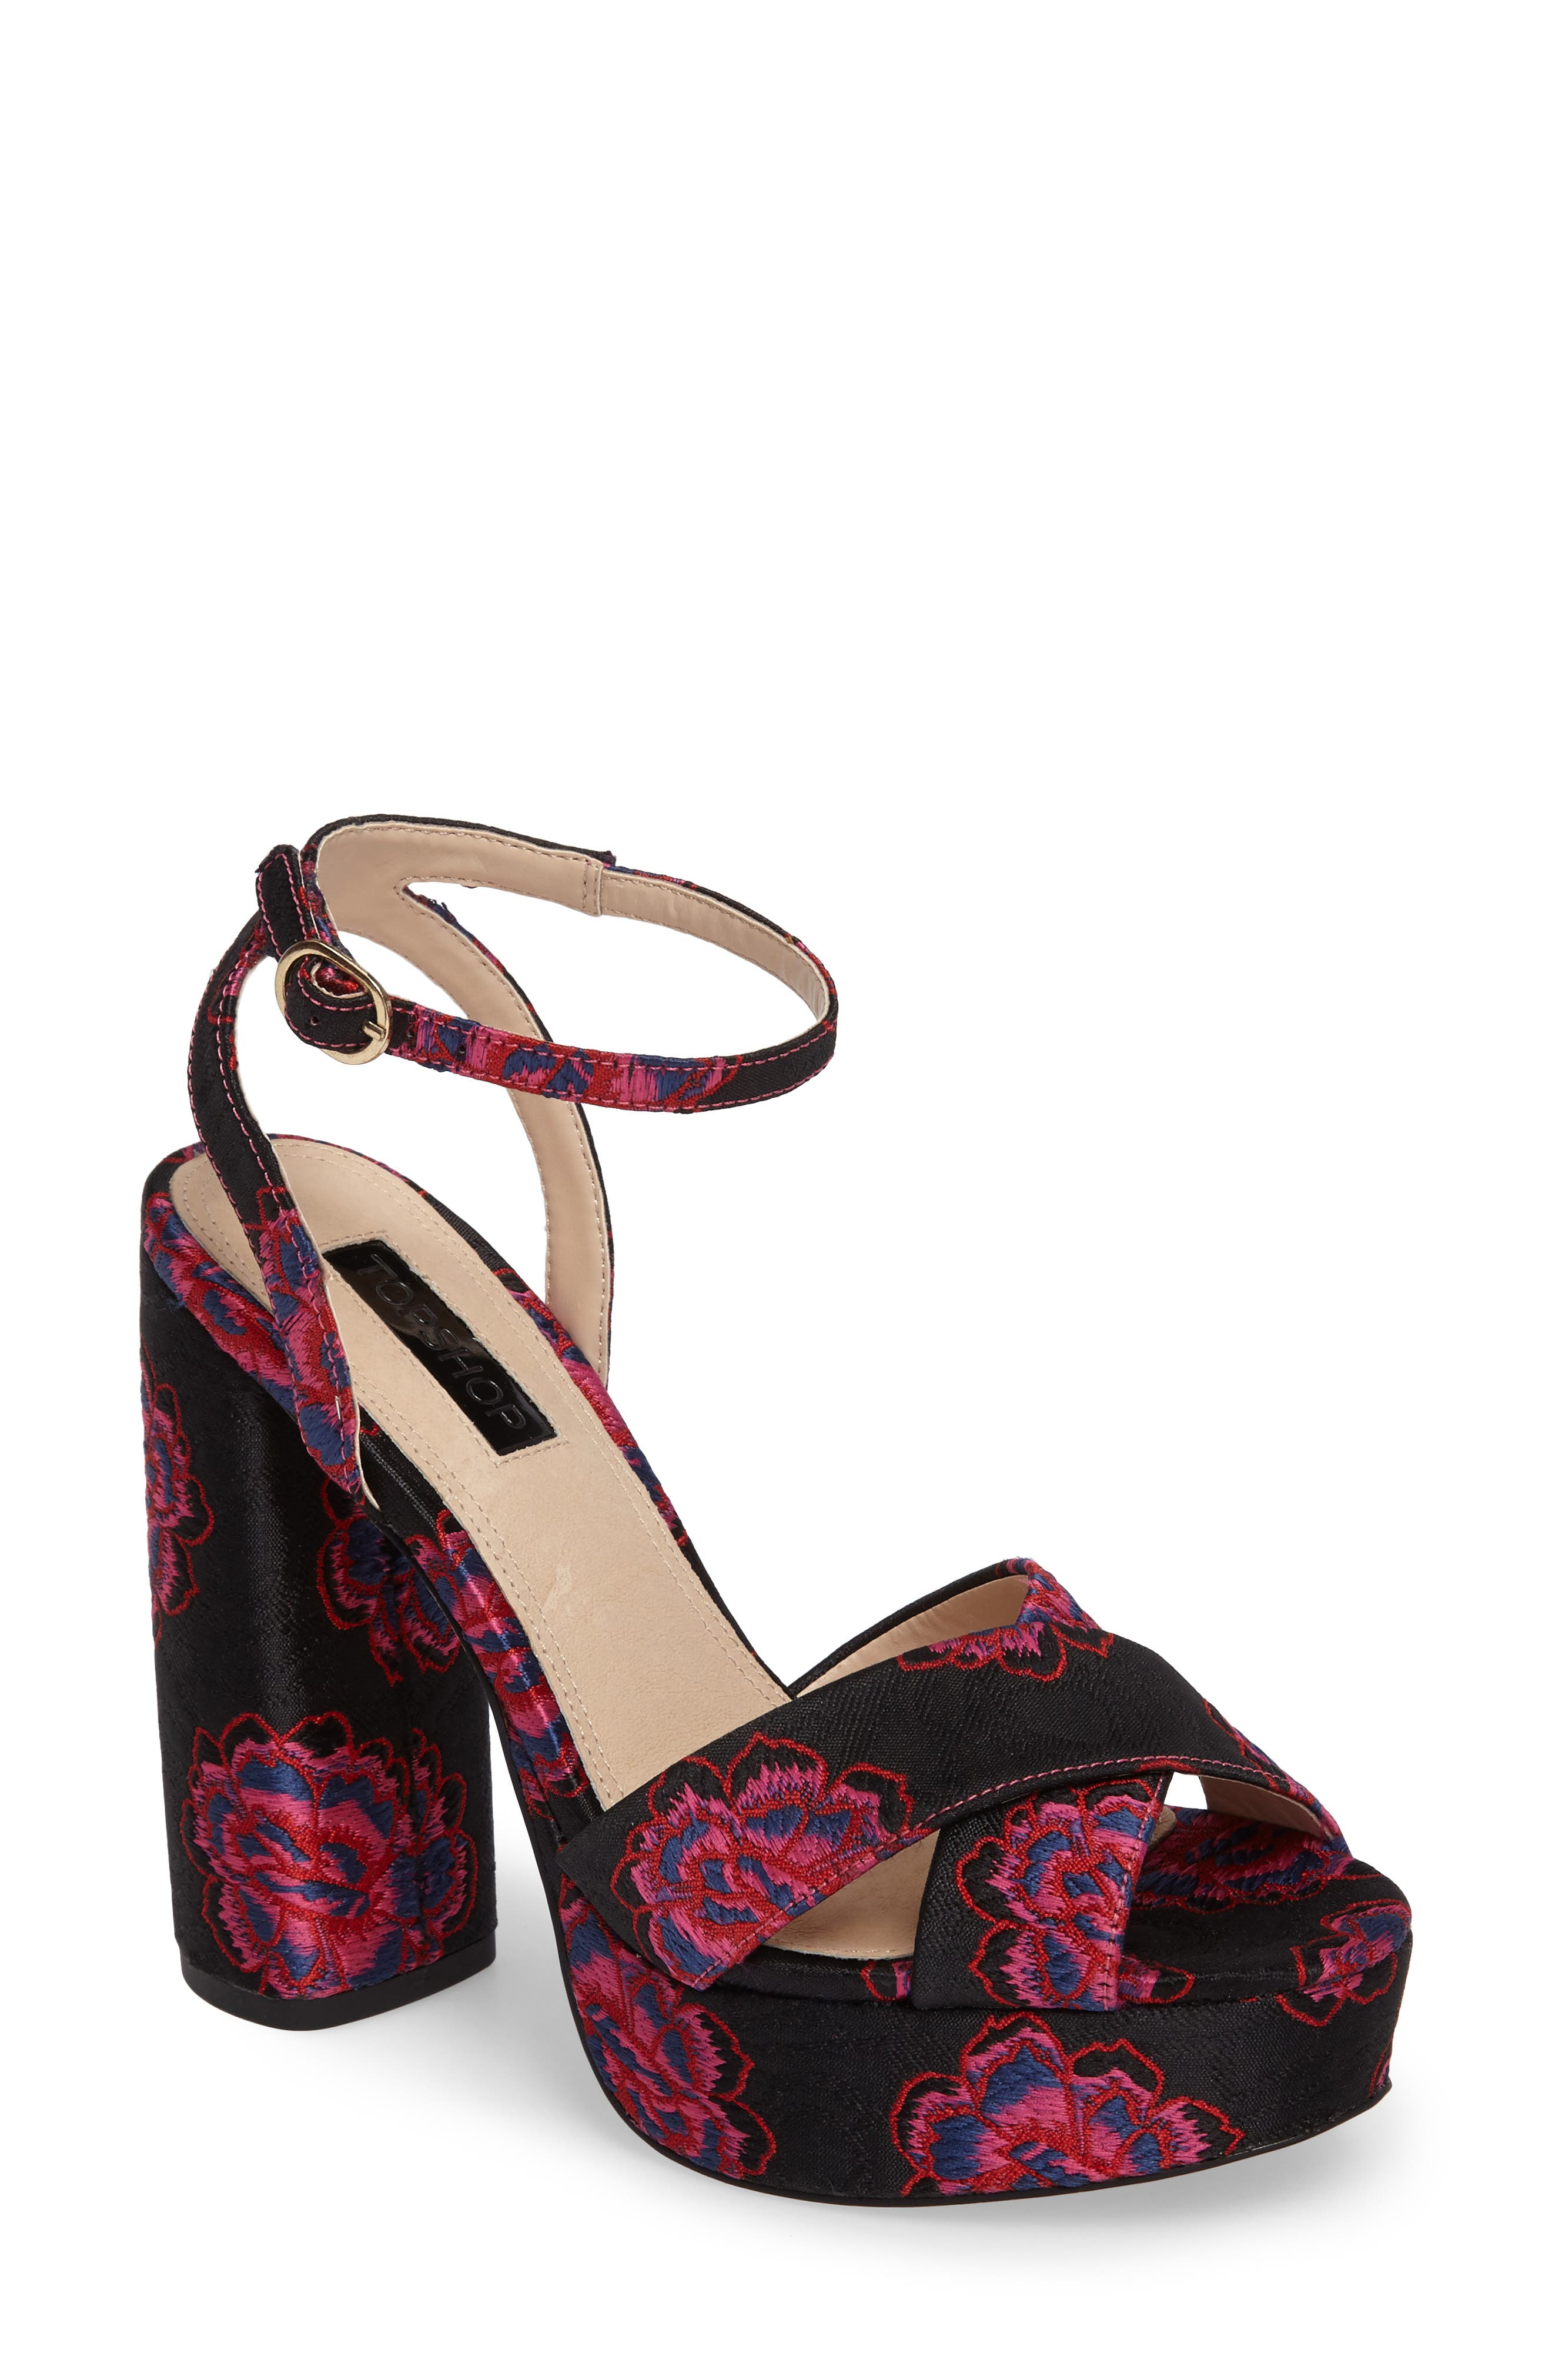 Lollie Embroidered Sandals,                         Main,                         color, 001